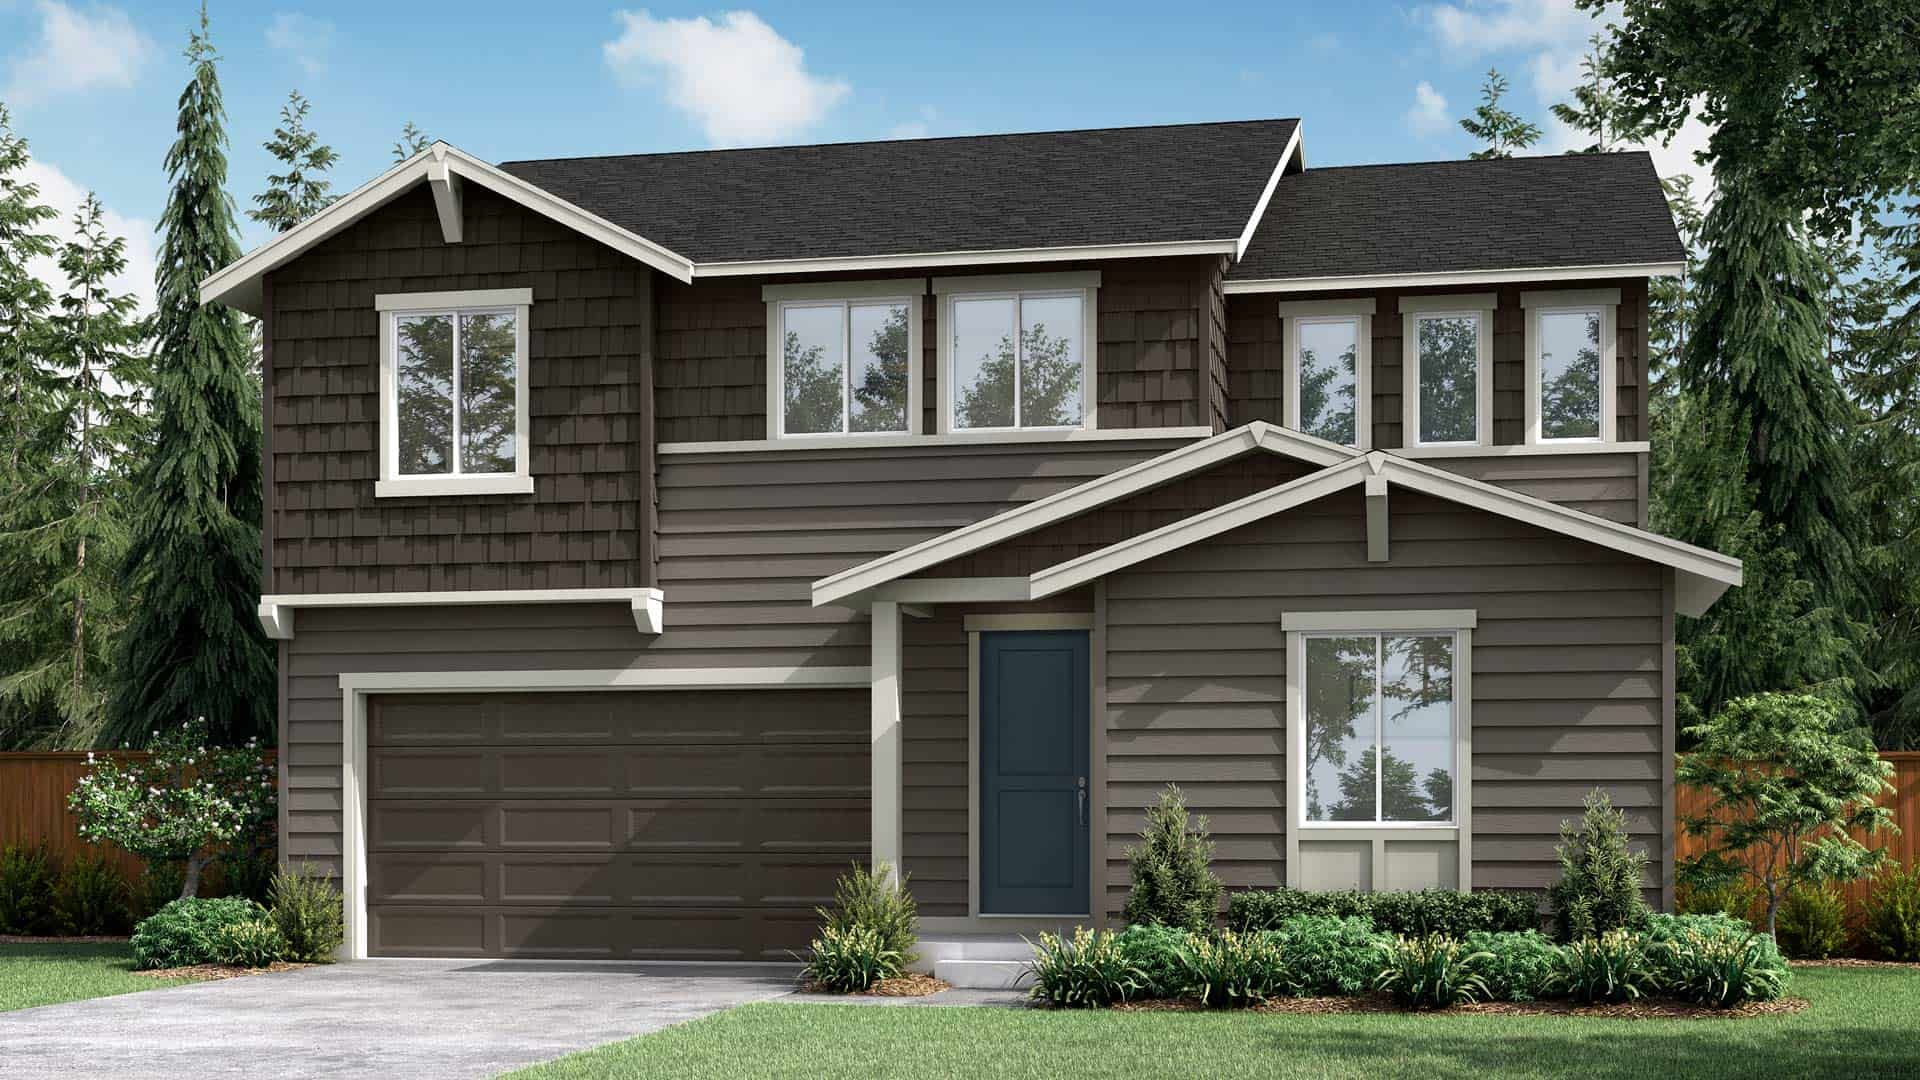 Exterior featured in the Plan A-280 By Tri Pointe Homes in Bremerton, WA